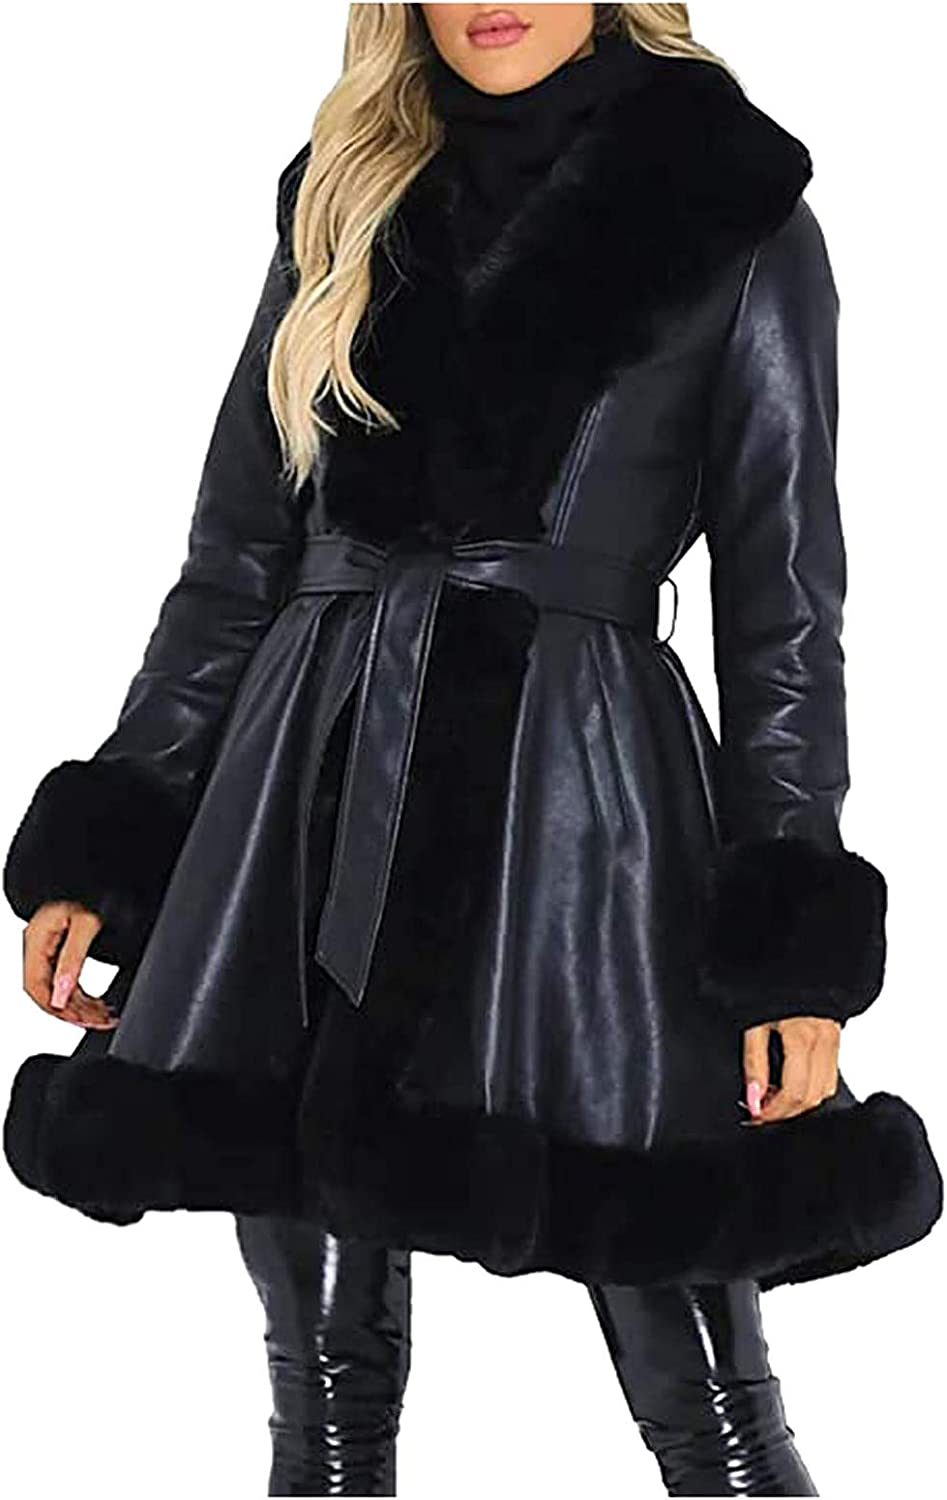 DEATU Women's Faux Leather Open-Front Jacket Dressy Belted Coats Outerwear Overcoat with Faux-Fur Collar and Cuff Hem